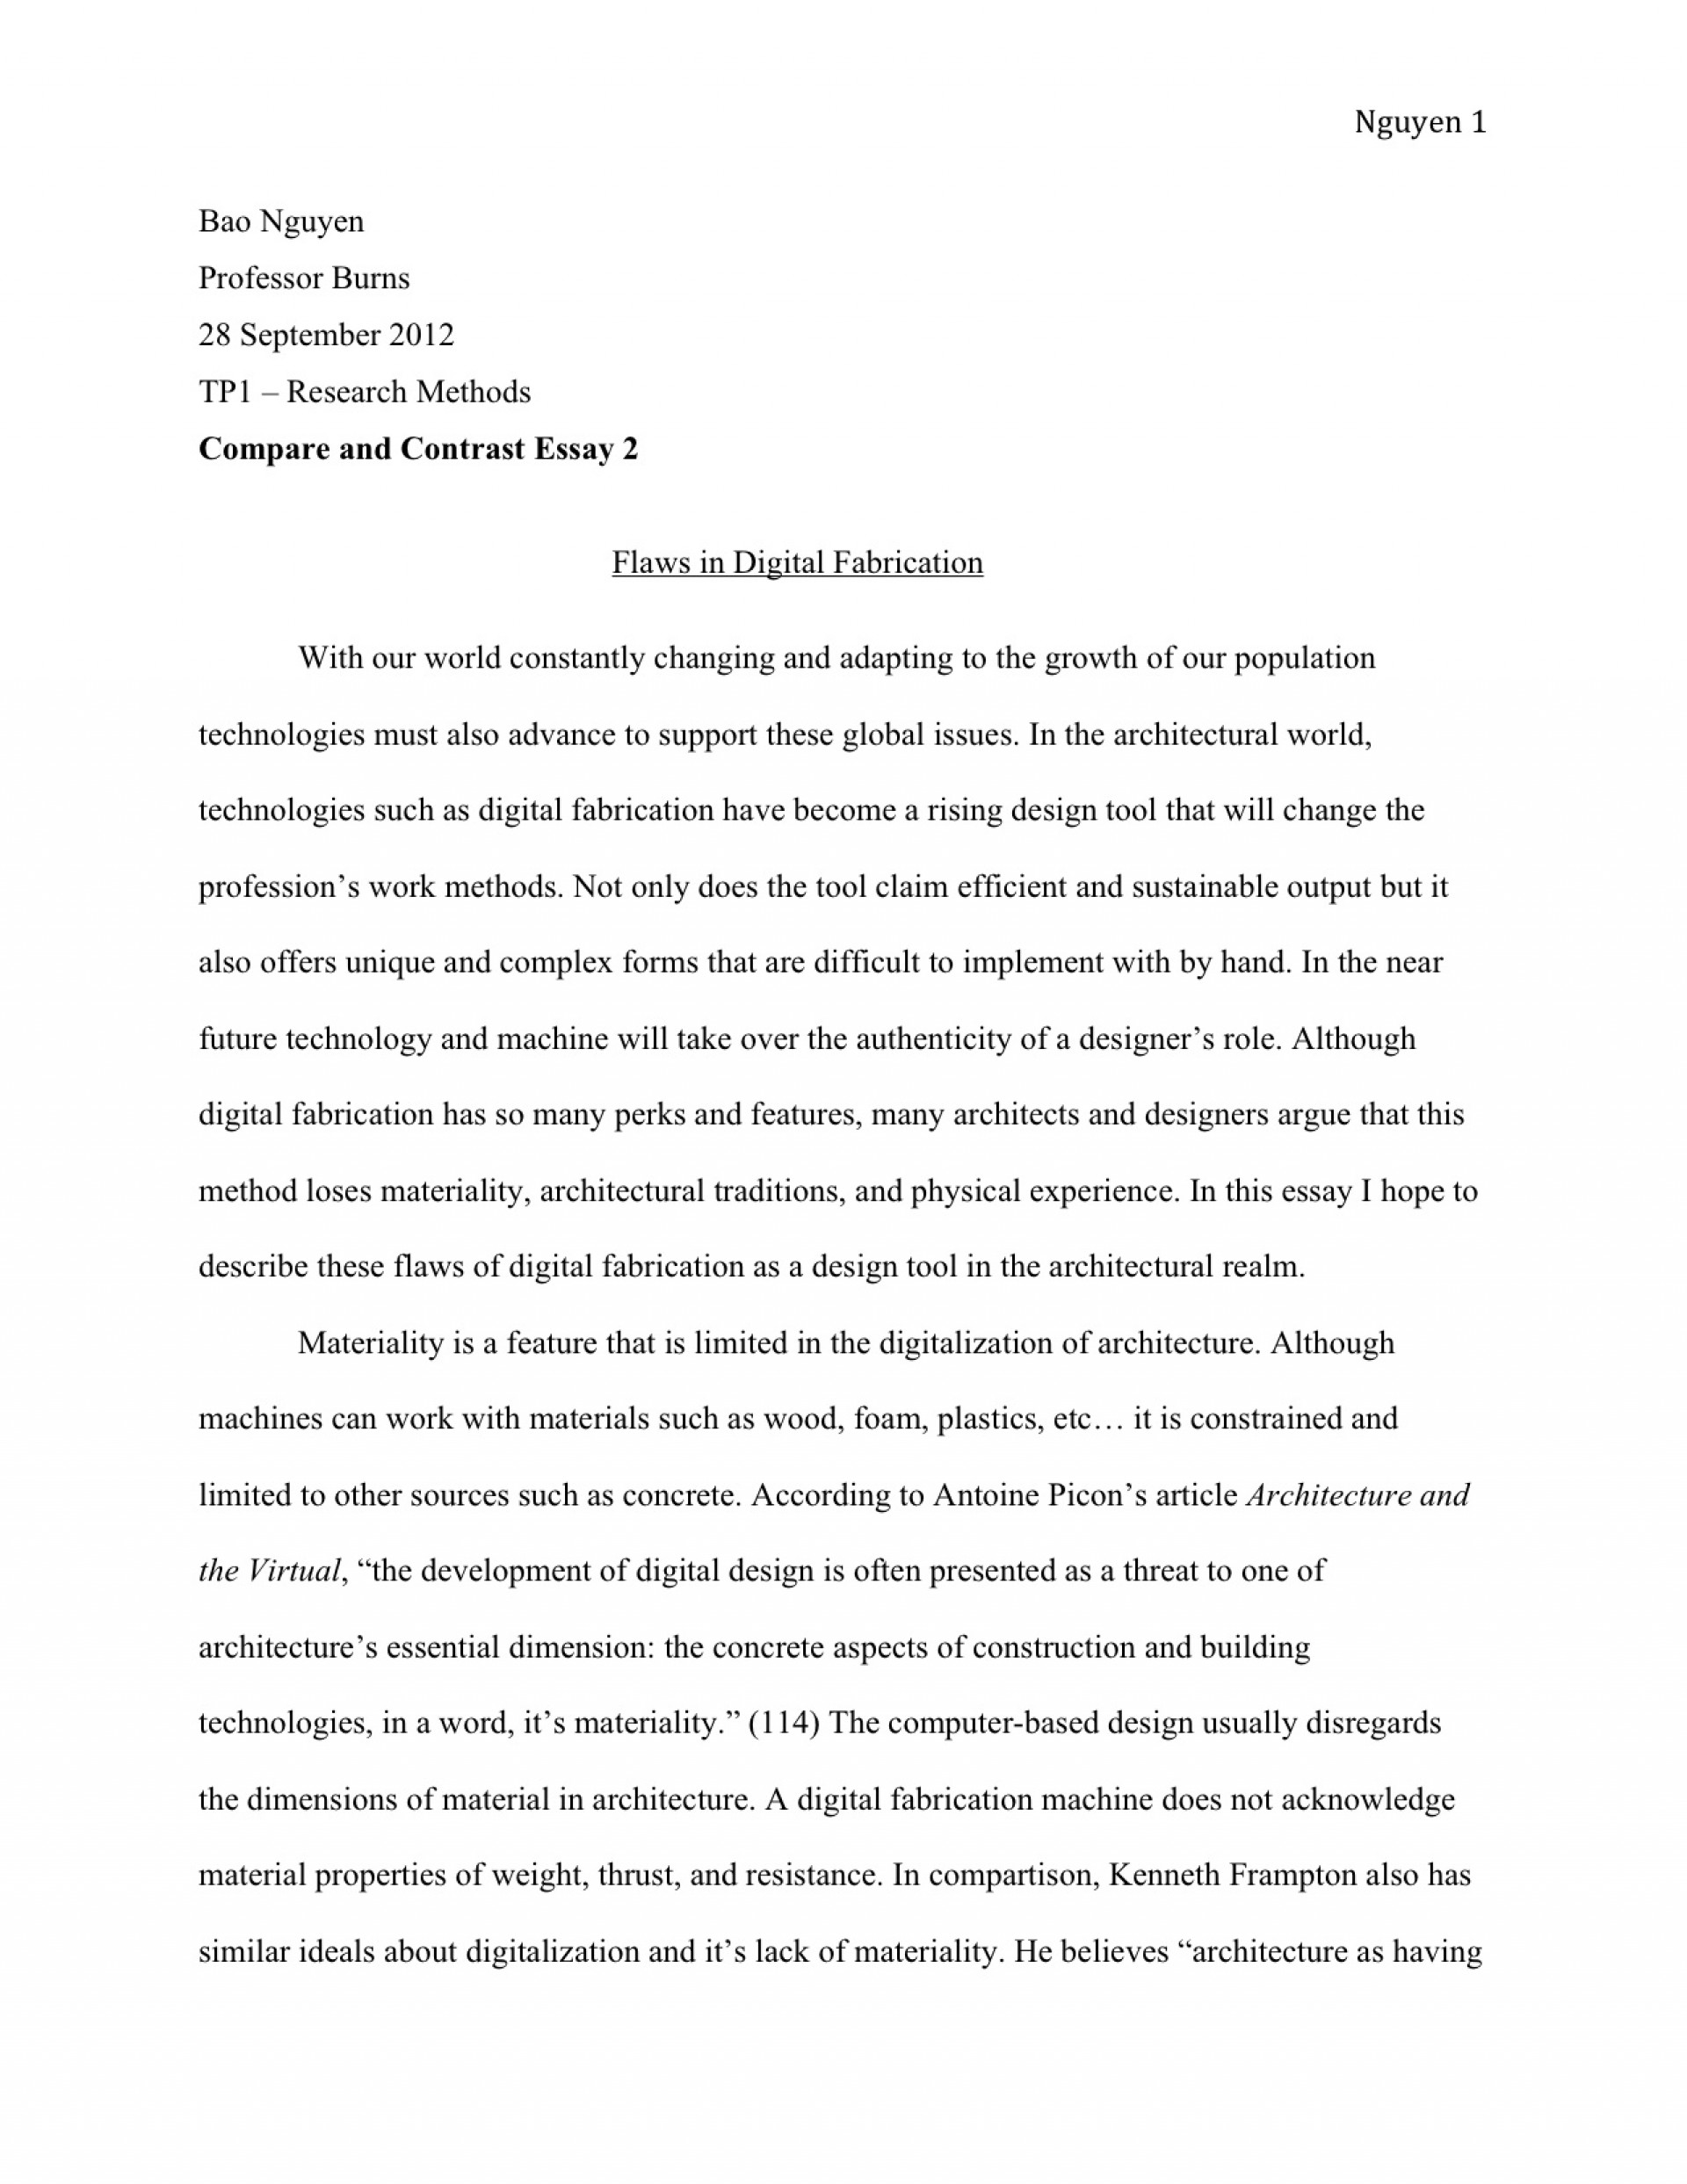 005 Essay Example With Thesis Tp1 3 Breathtaking Personal Narrative Statement And Topic Sentence Format 1920